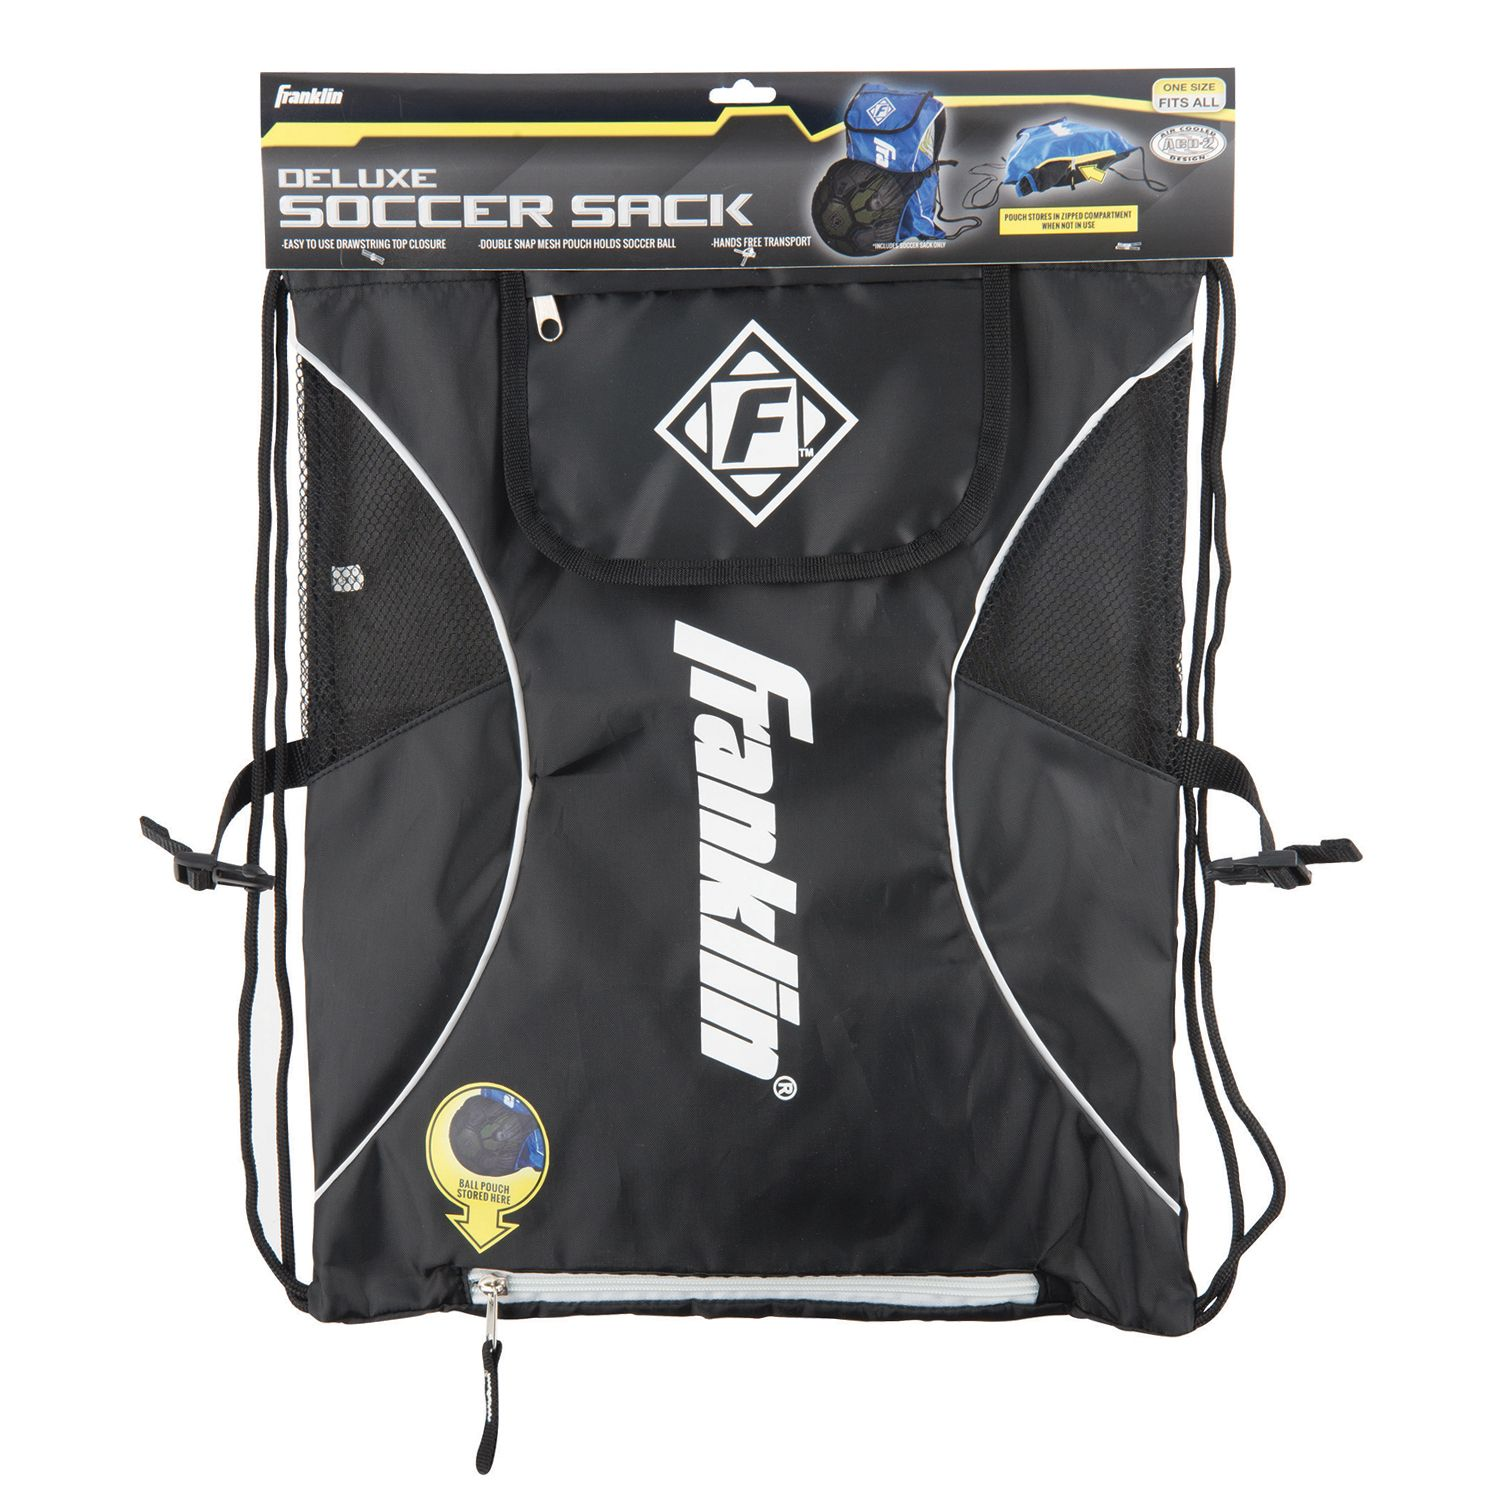 Soccer Bags - Sporting Goods a692f1c982